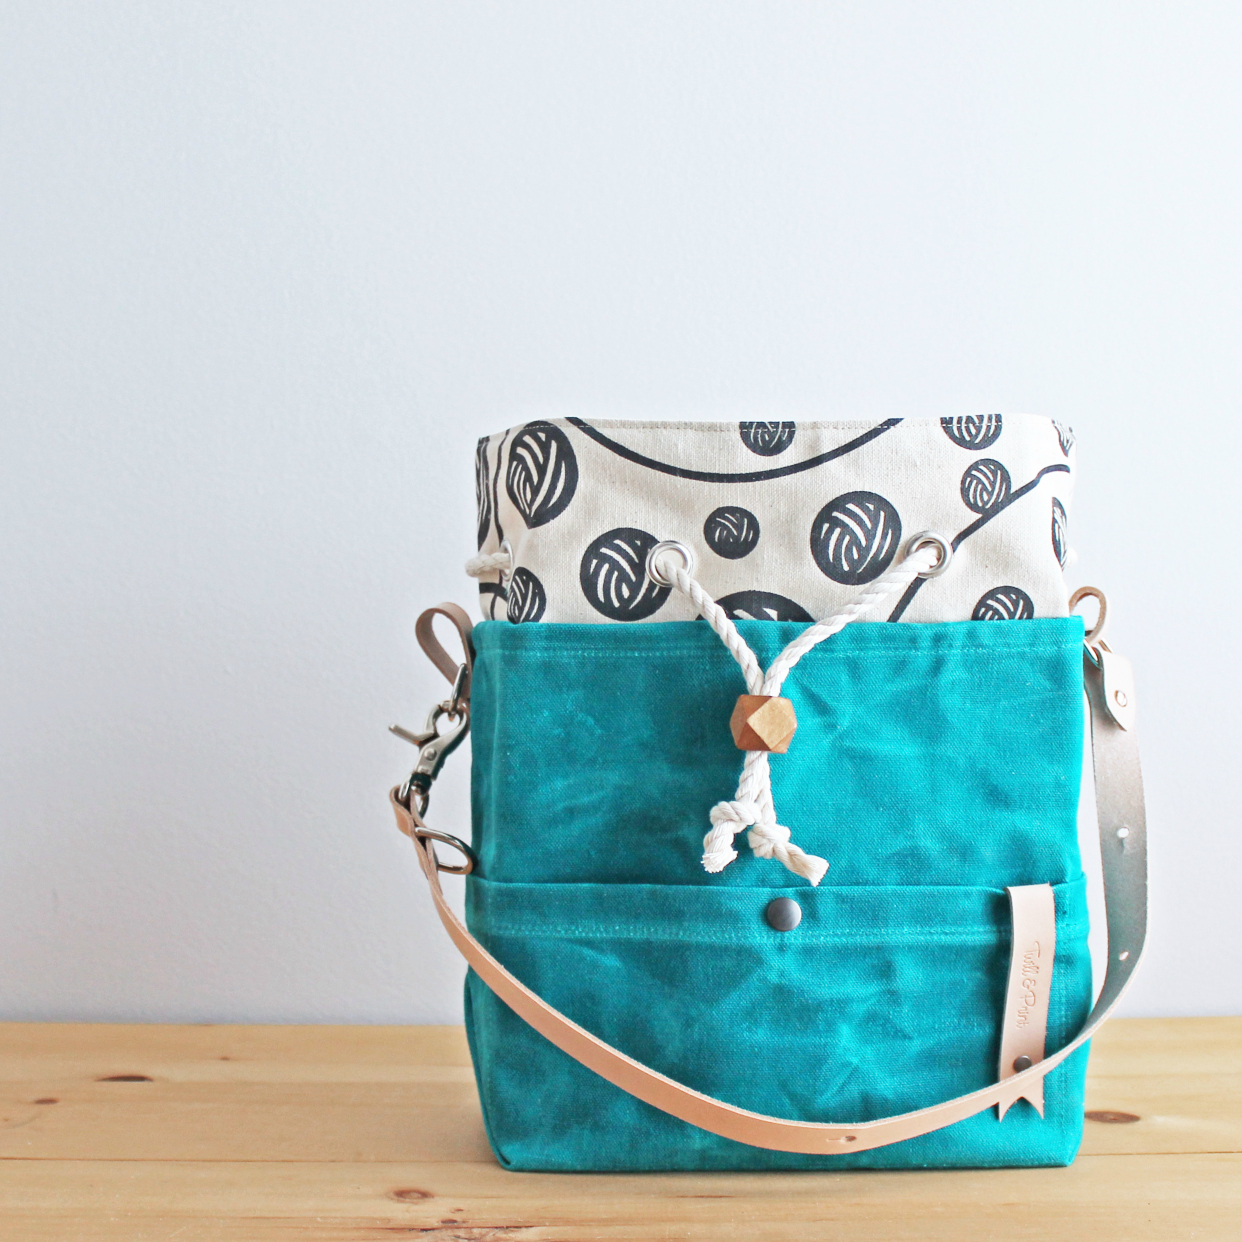 A teal bag with a lining of gray yarn balls and a tan leather strap.